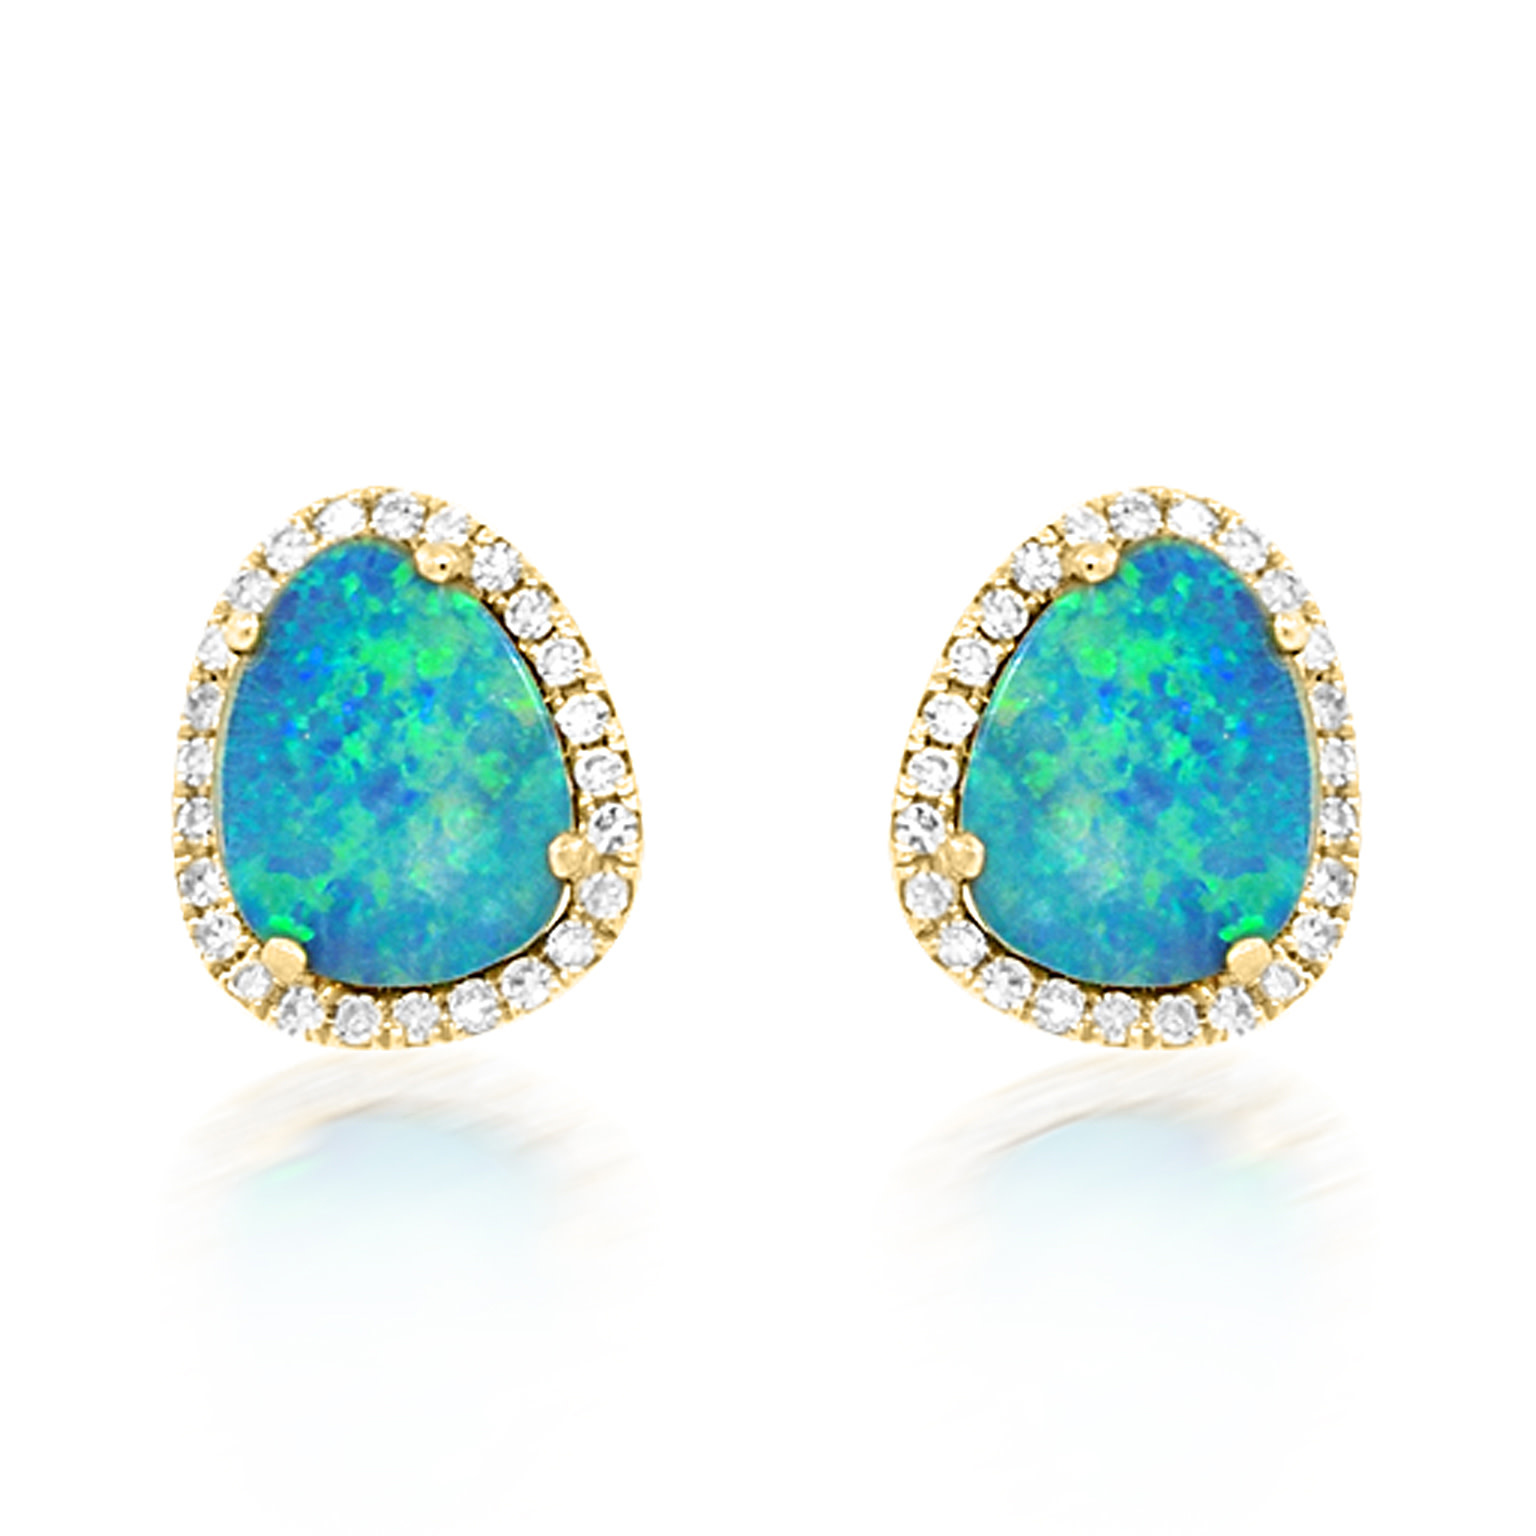 Asymmetrical Opal Stud Earrings